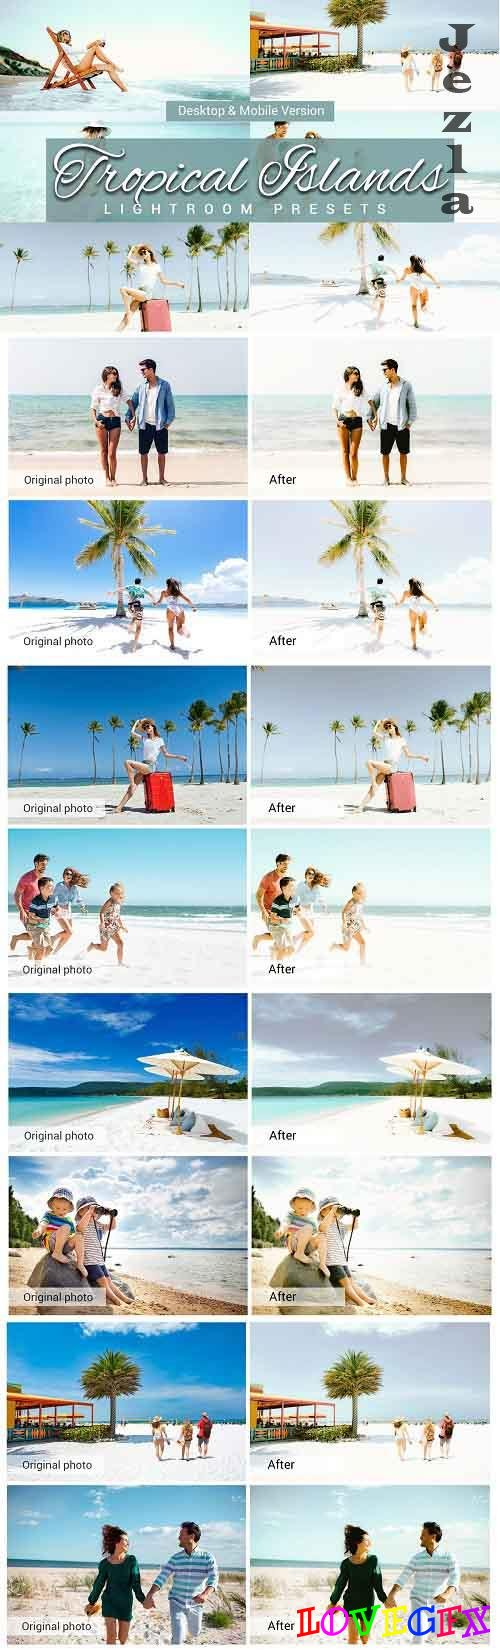 Tropical Islands Lightroom Presets 5157498